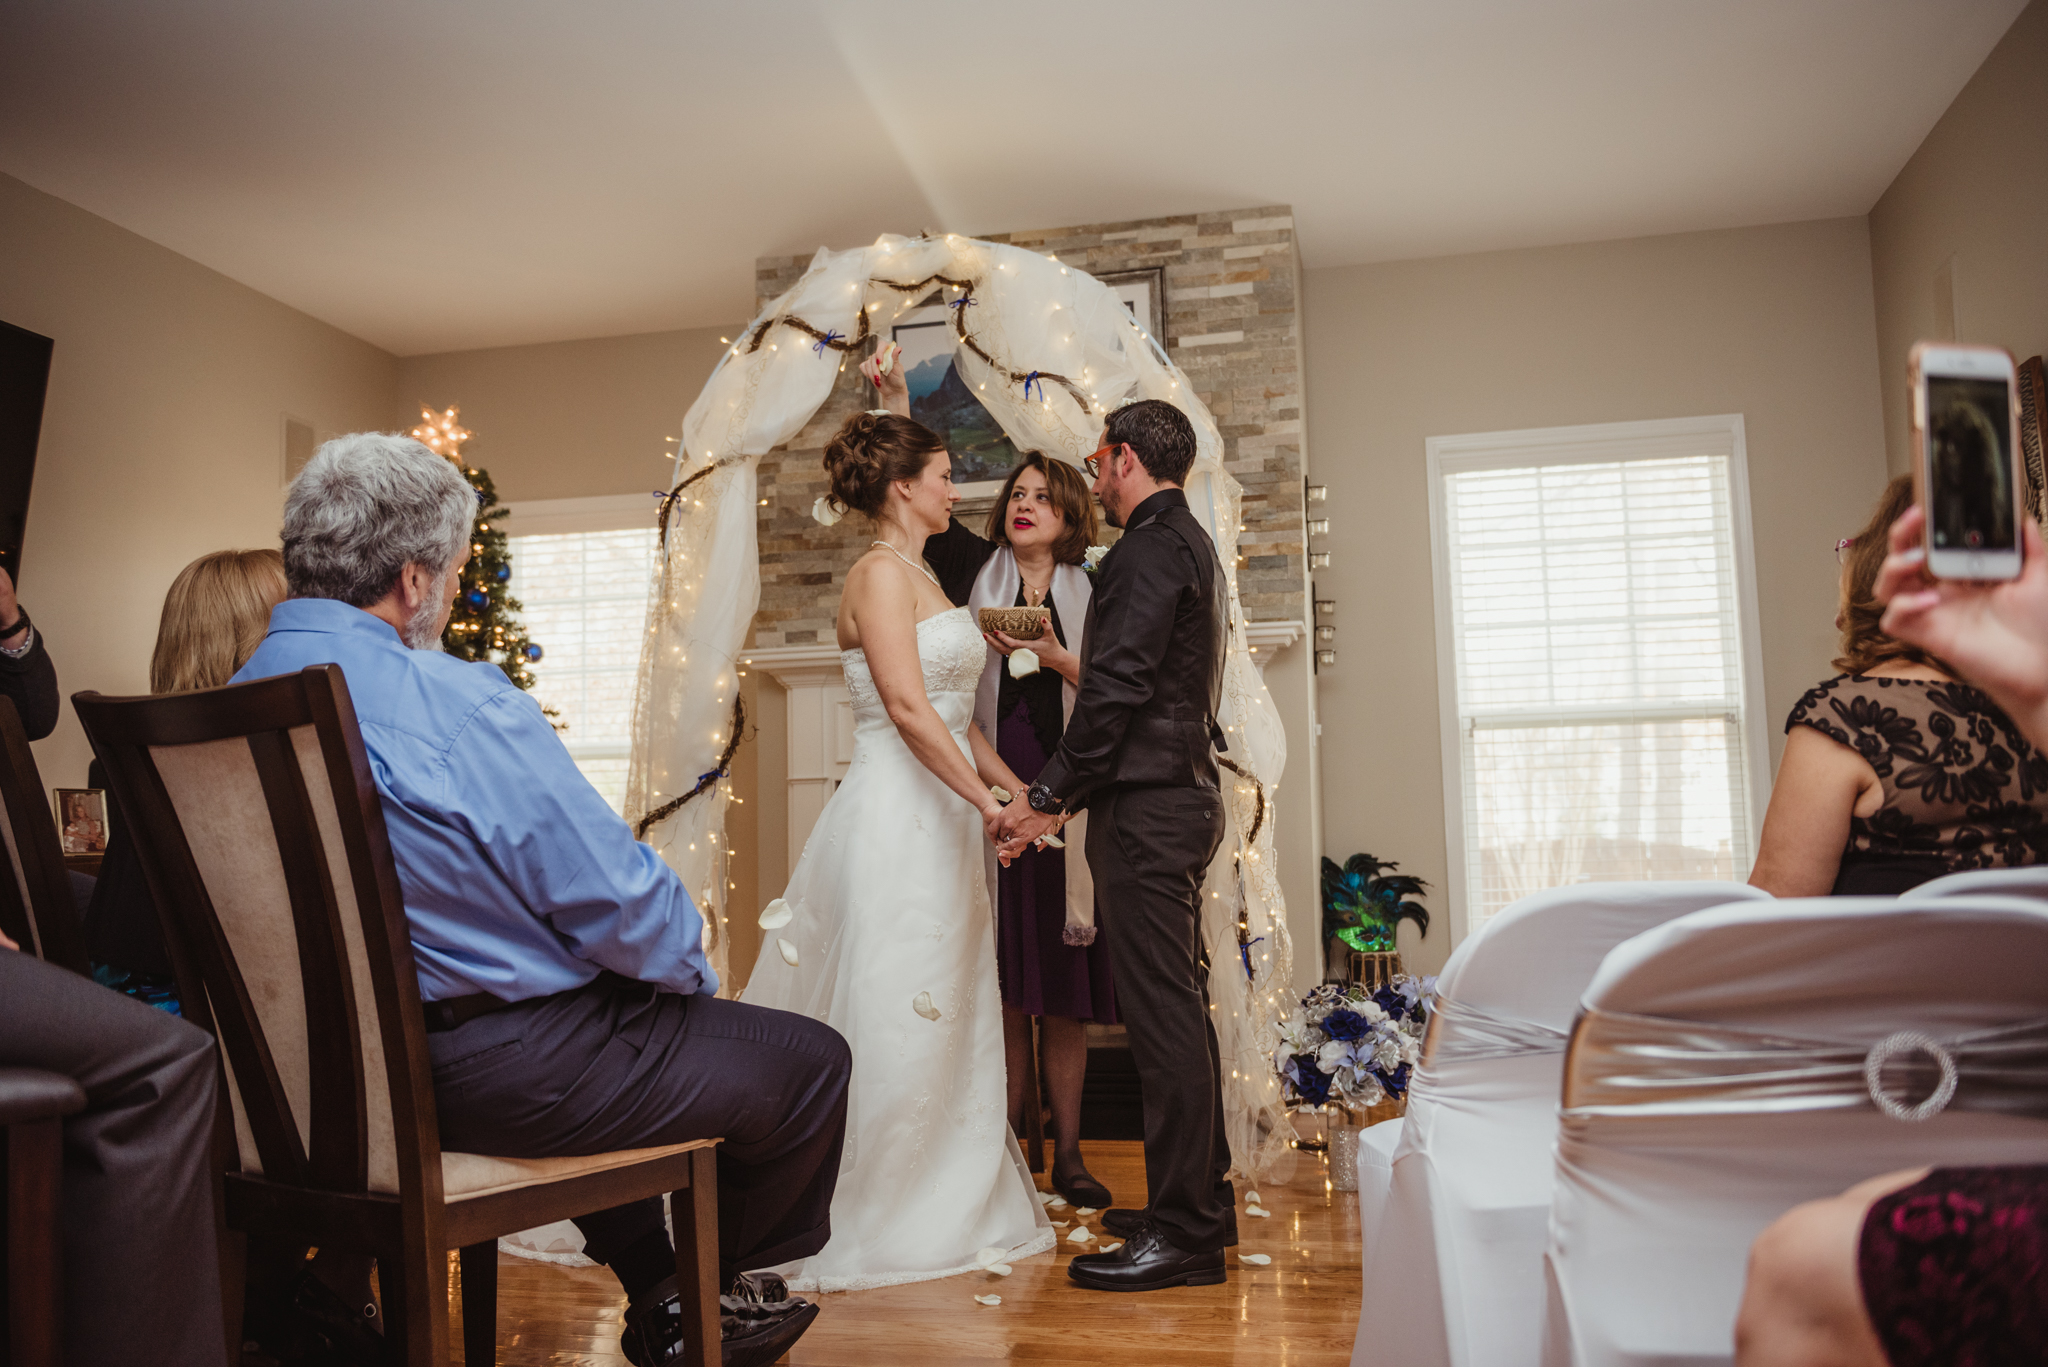 the-bride-and-groom-are-blessed-with-rose-petals-at-their-intimate-home-wedding-in-Raleigh.jpg